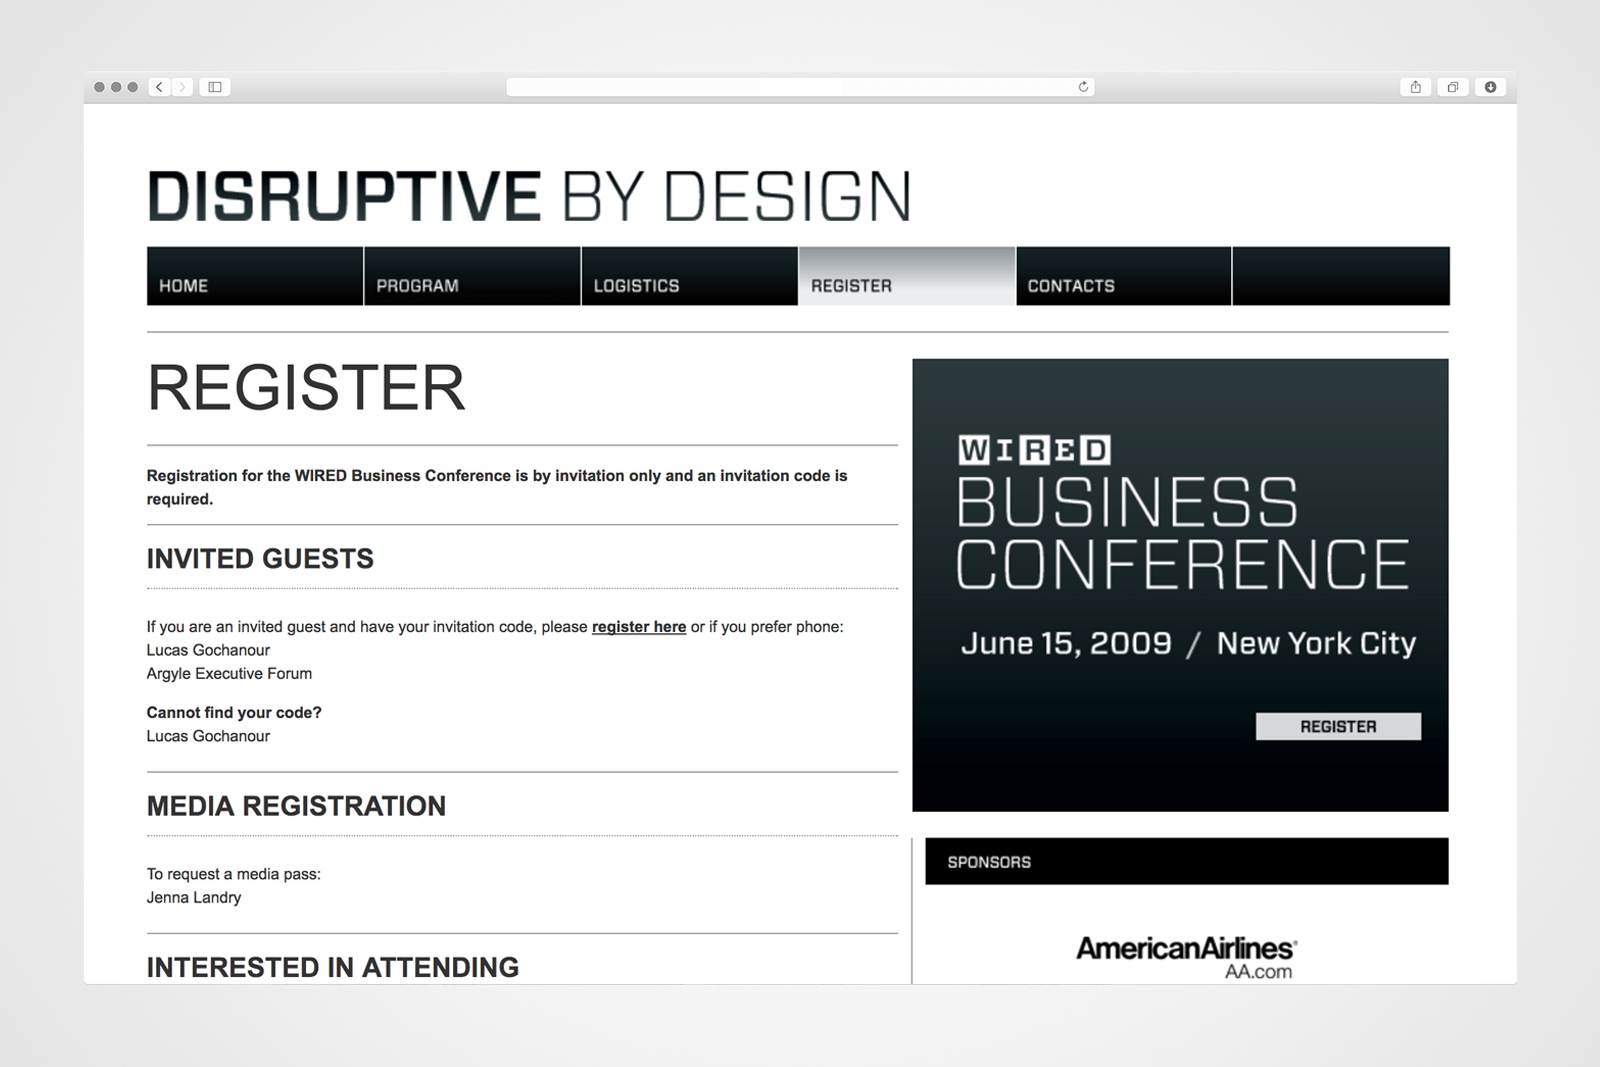 WIRED Disruptive by Design